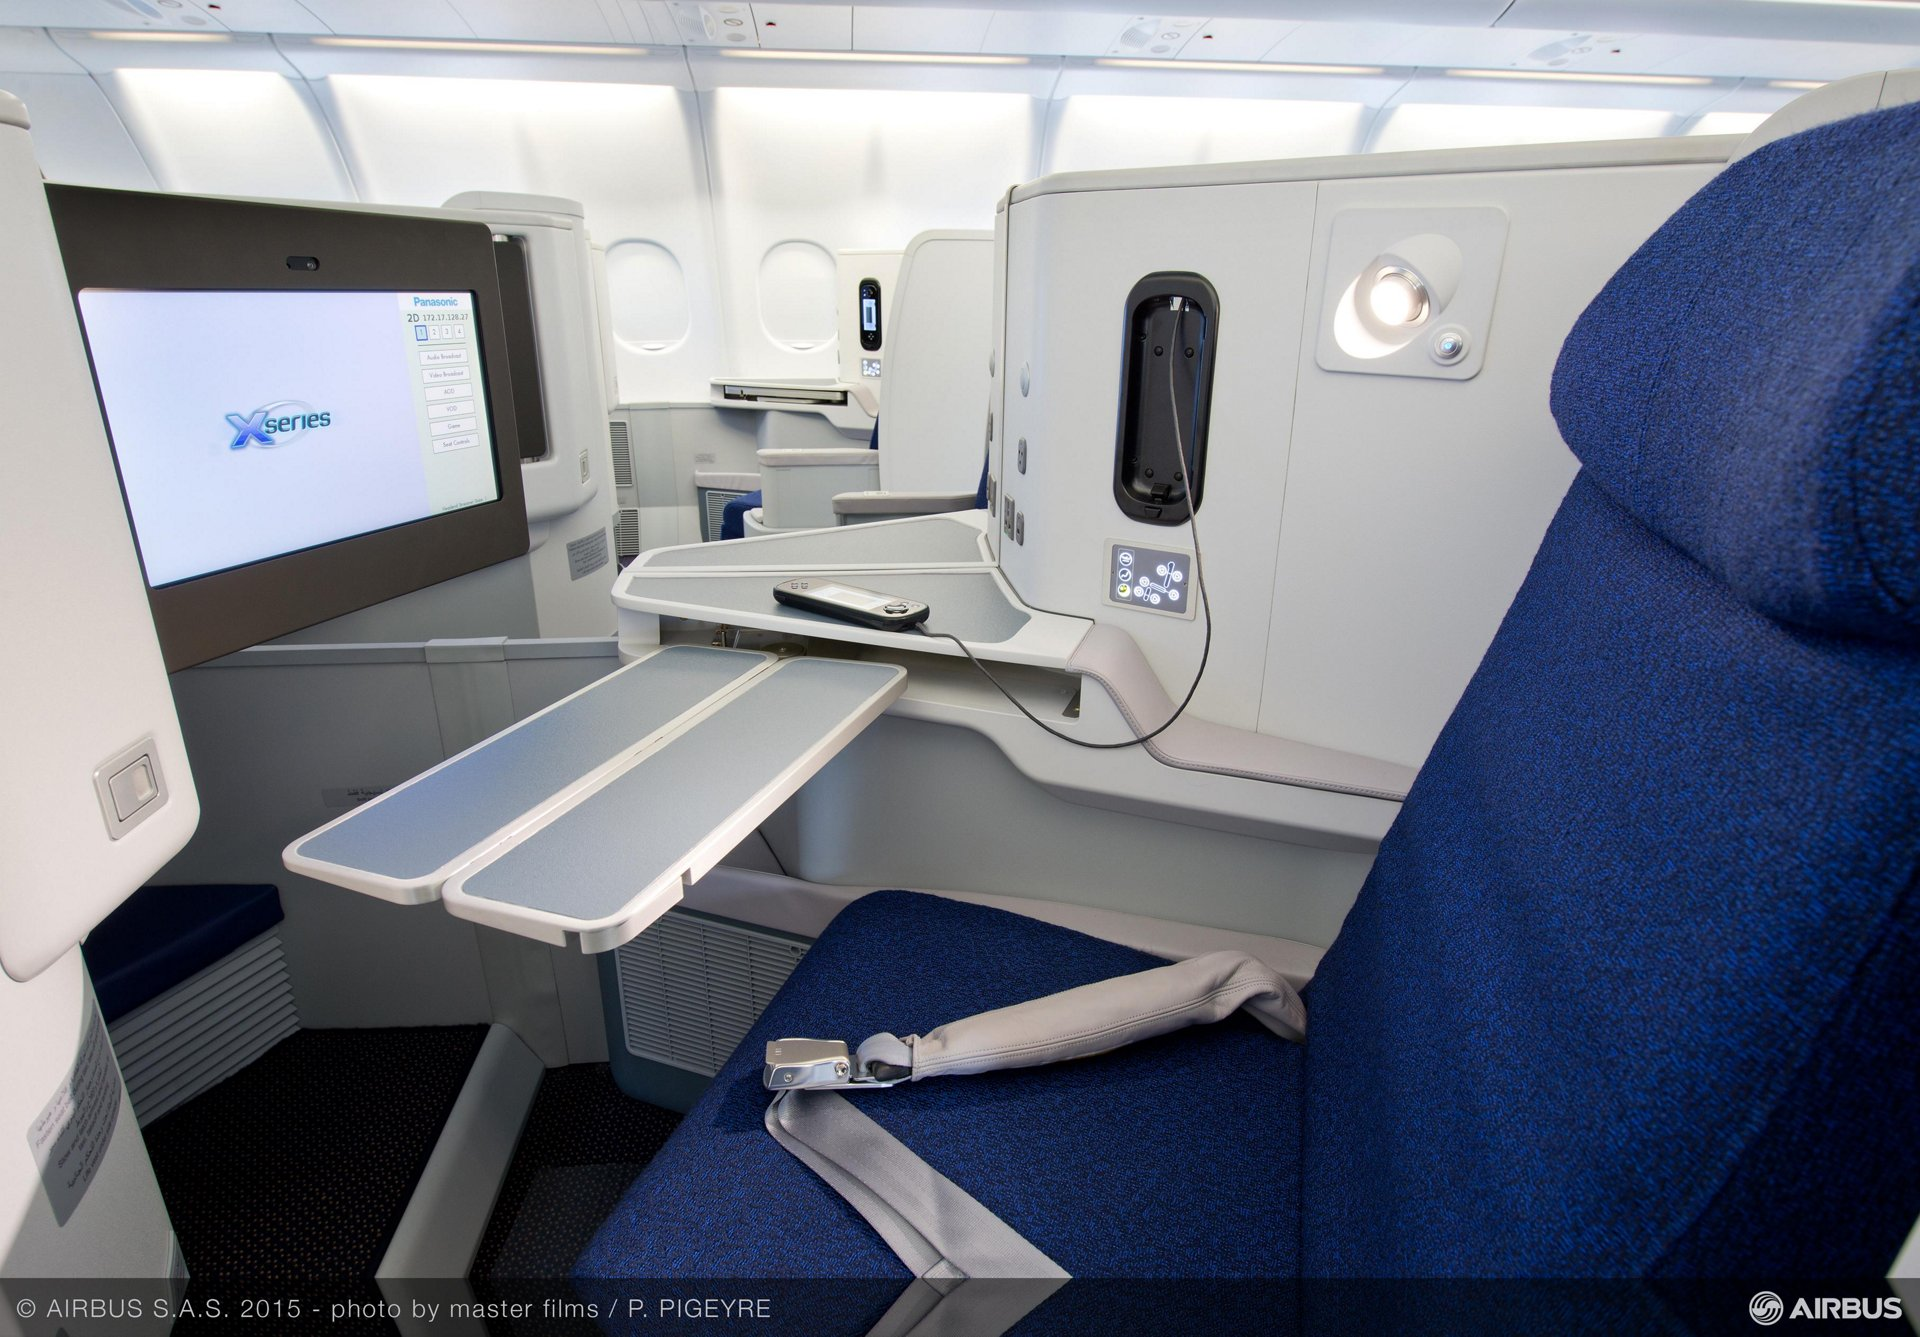 The completely redesigned cabin for Air Algérie A330-200 aircraft comfortably accommodates 18 passengers in business class, 14 in premium economy and 219 in economy class